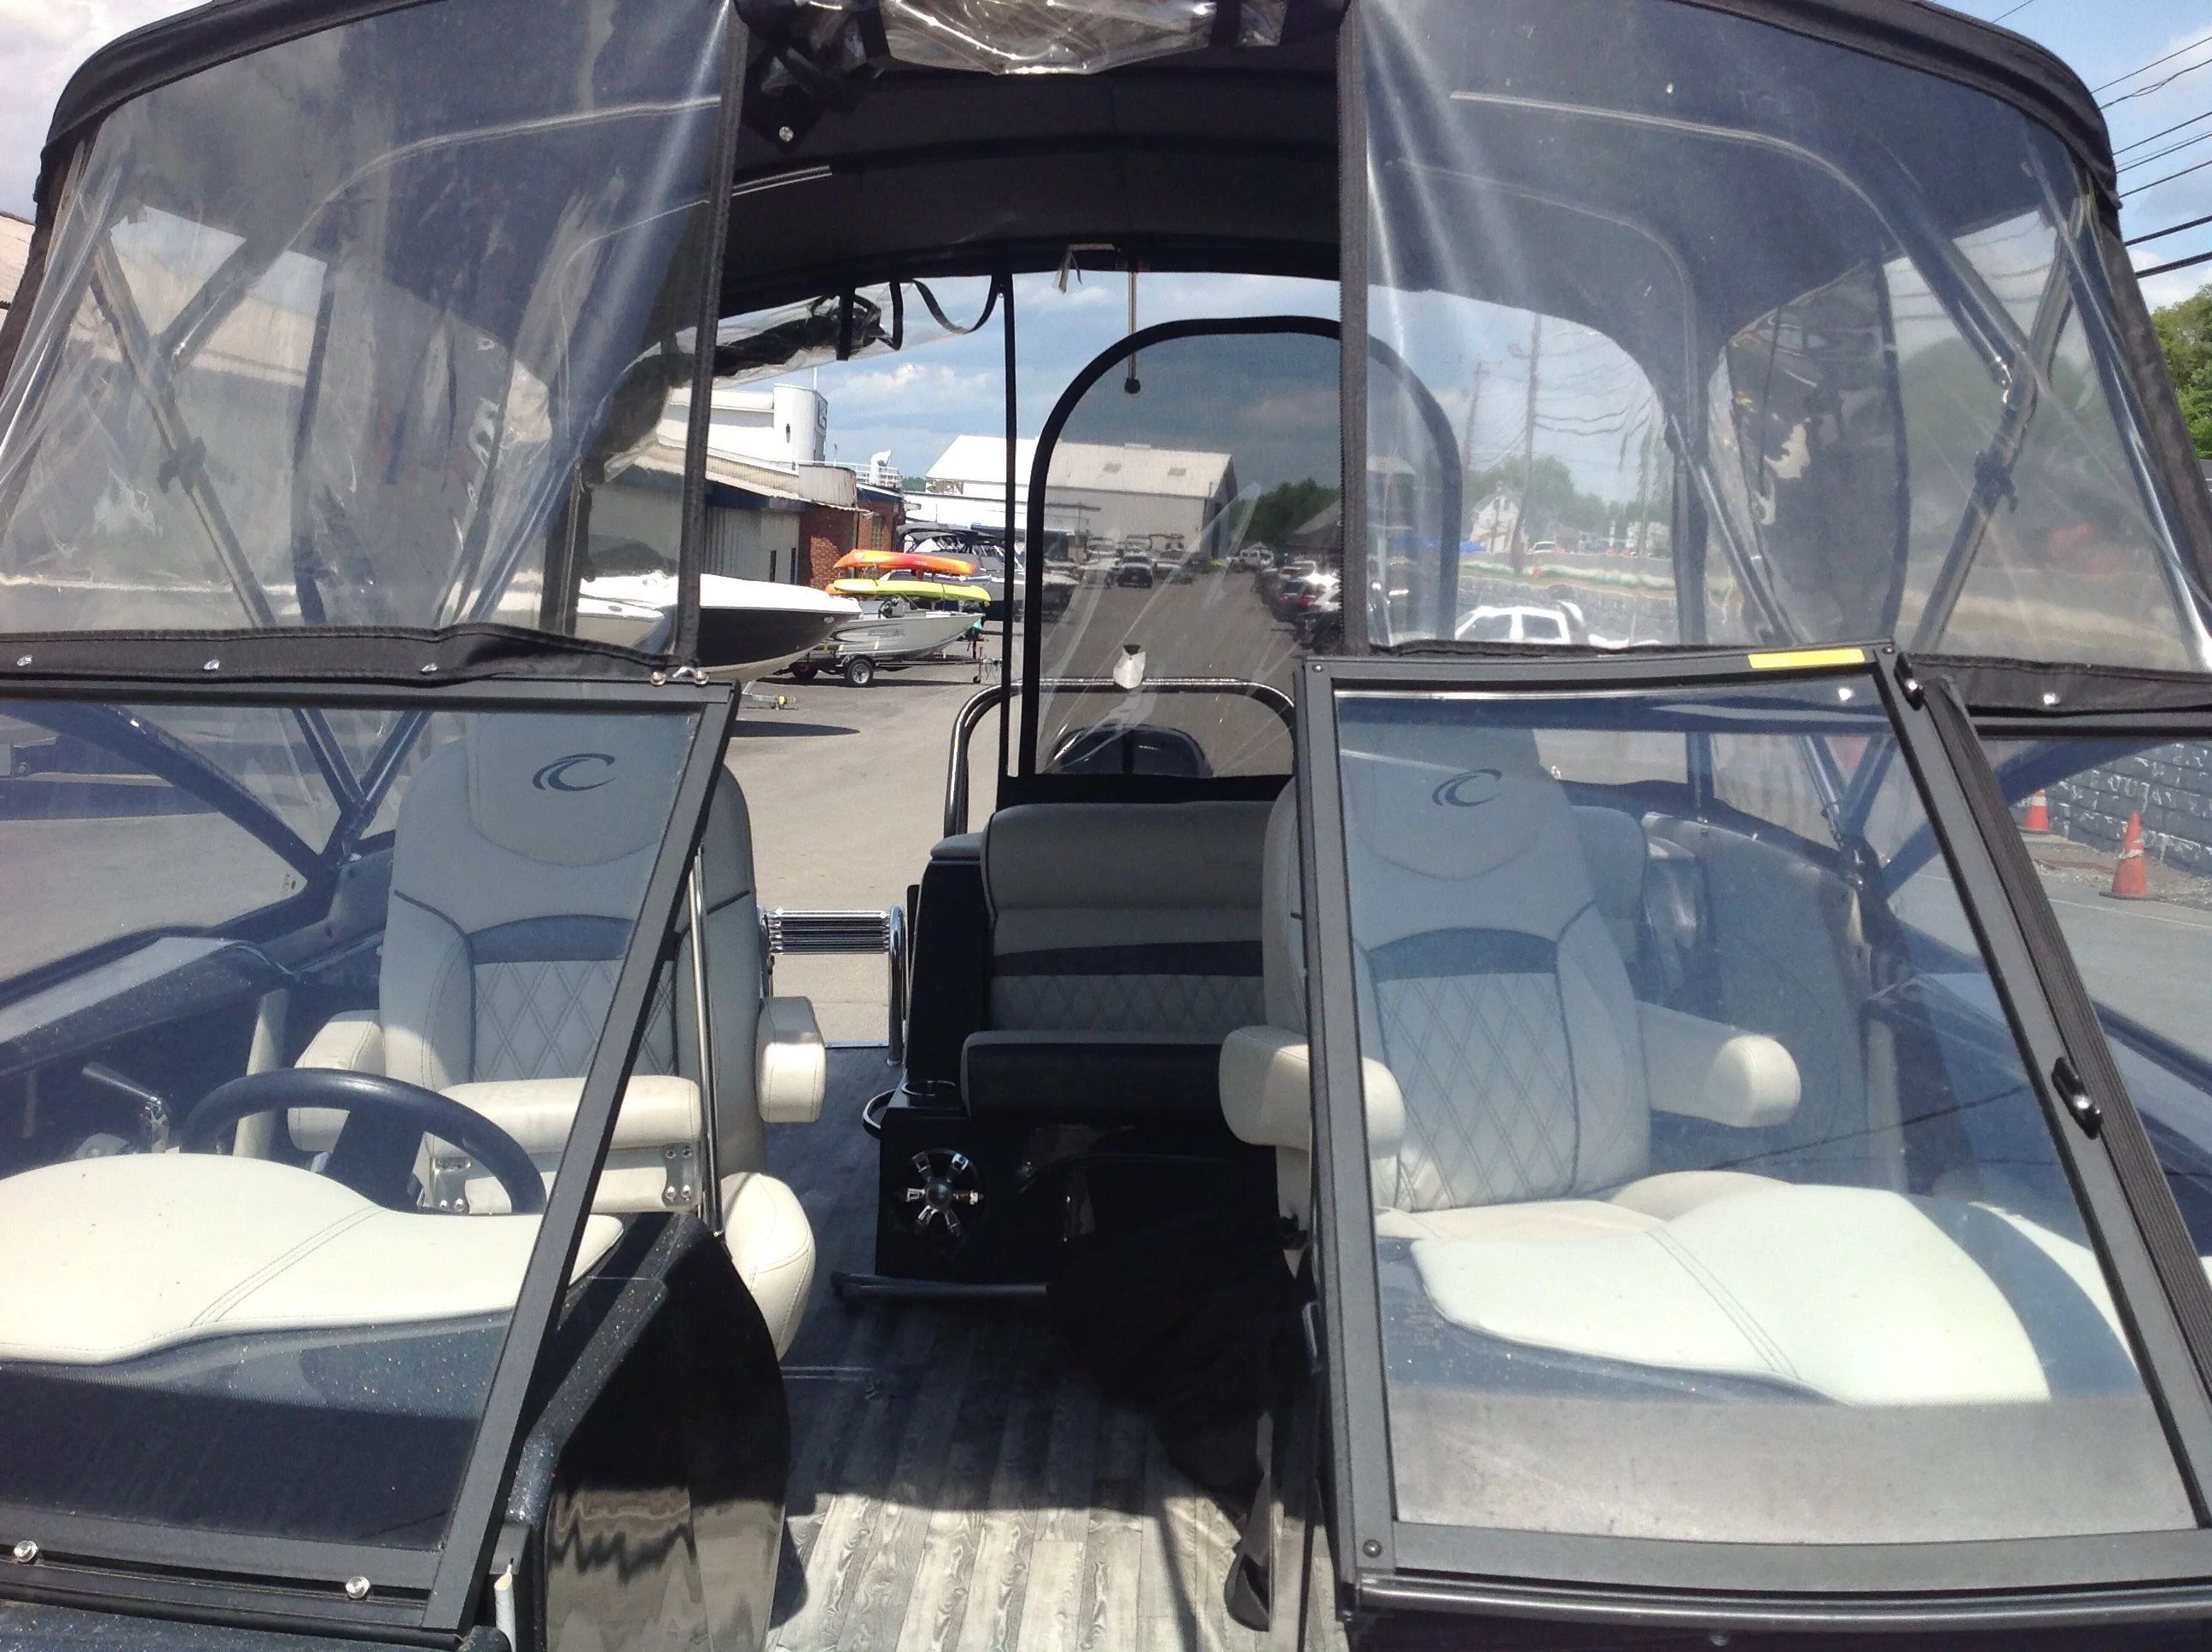 2018 Crest boat for sale, model of the boat is Continental Nx 270cs & Image # 11 of 20